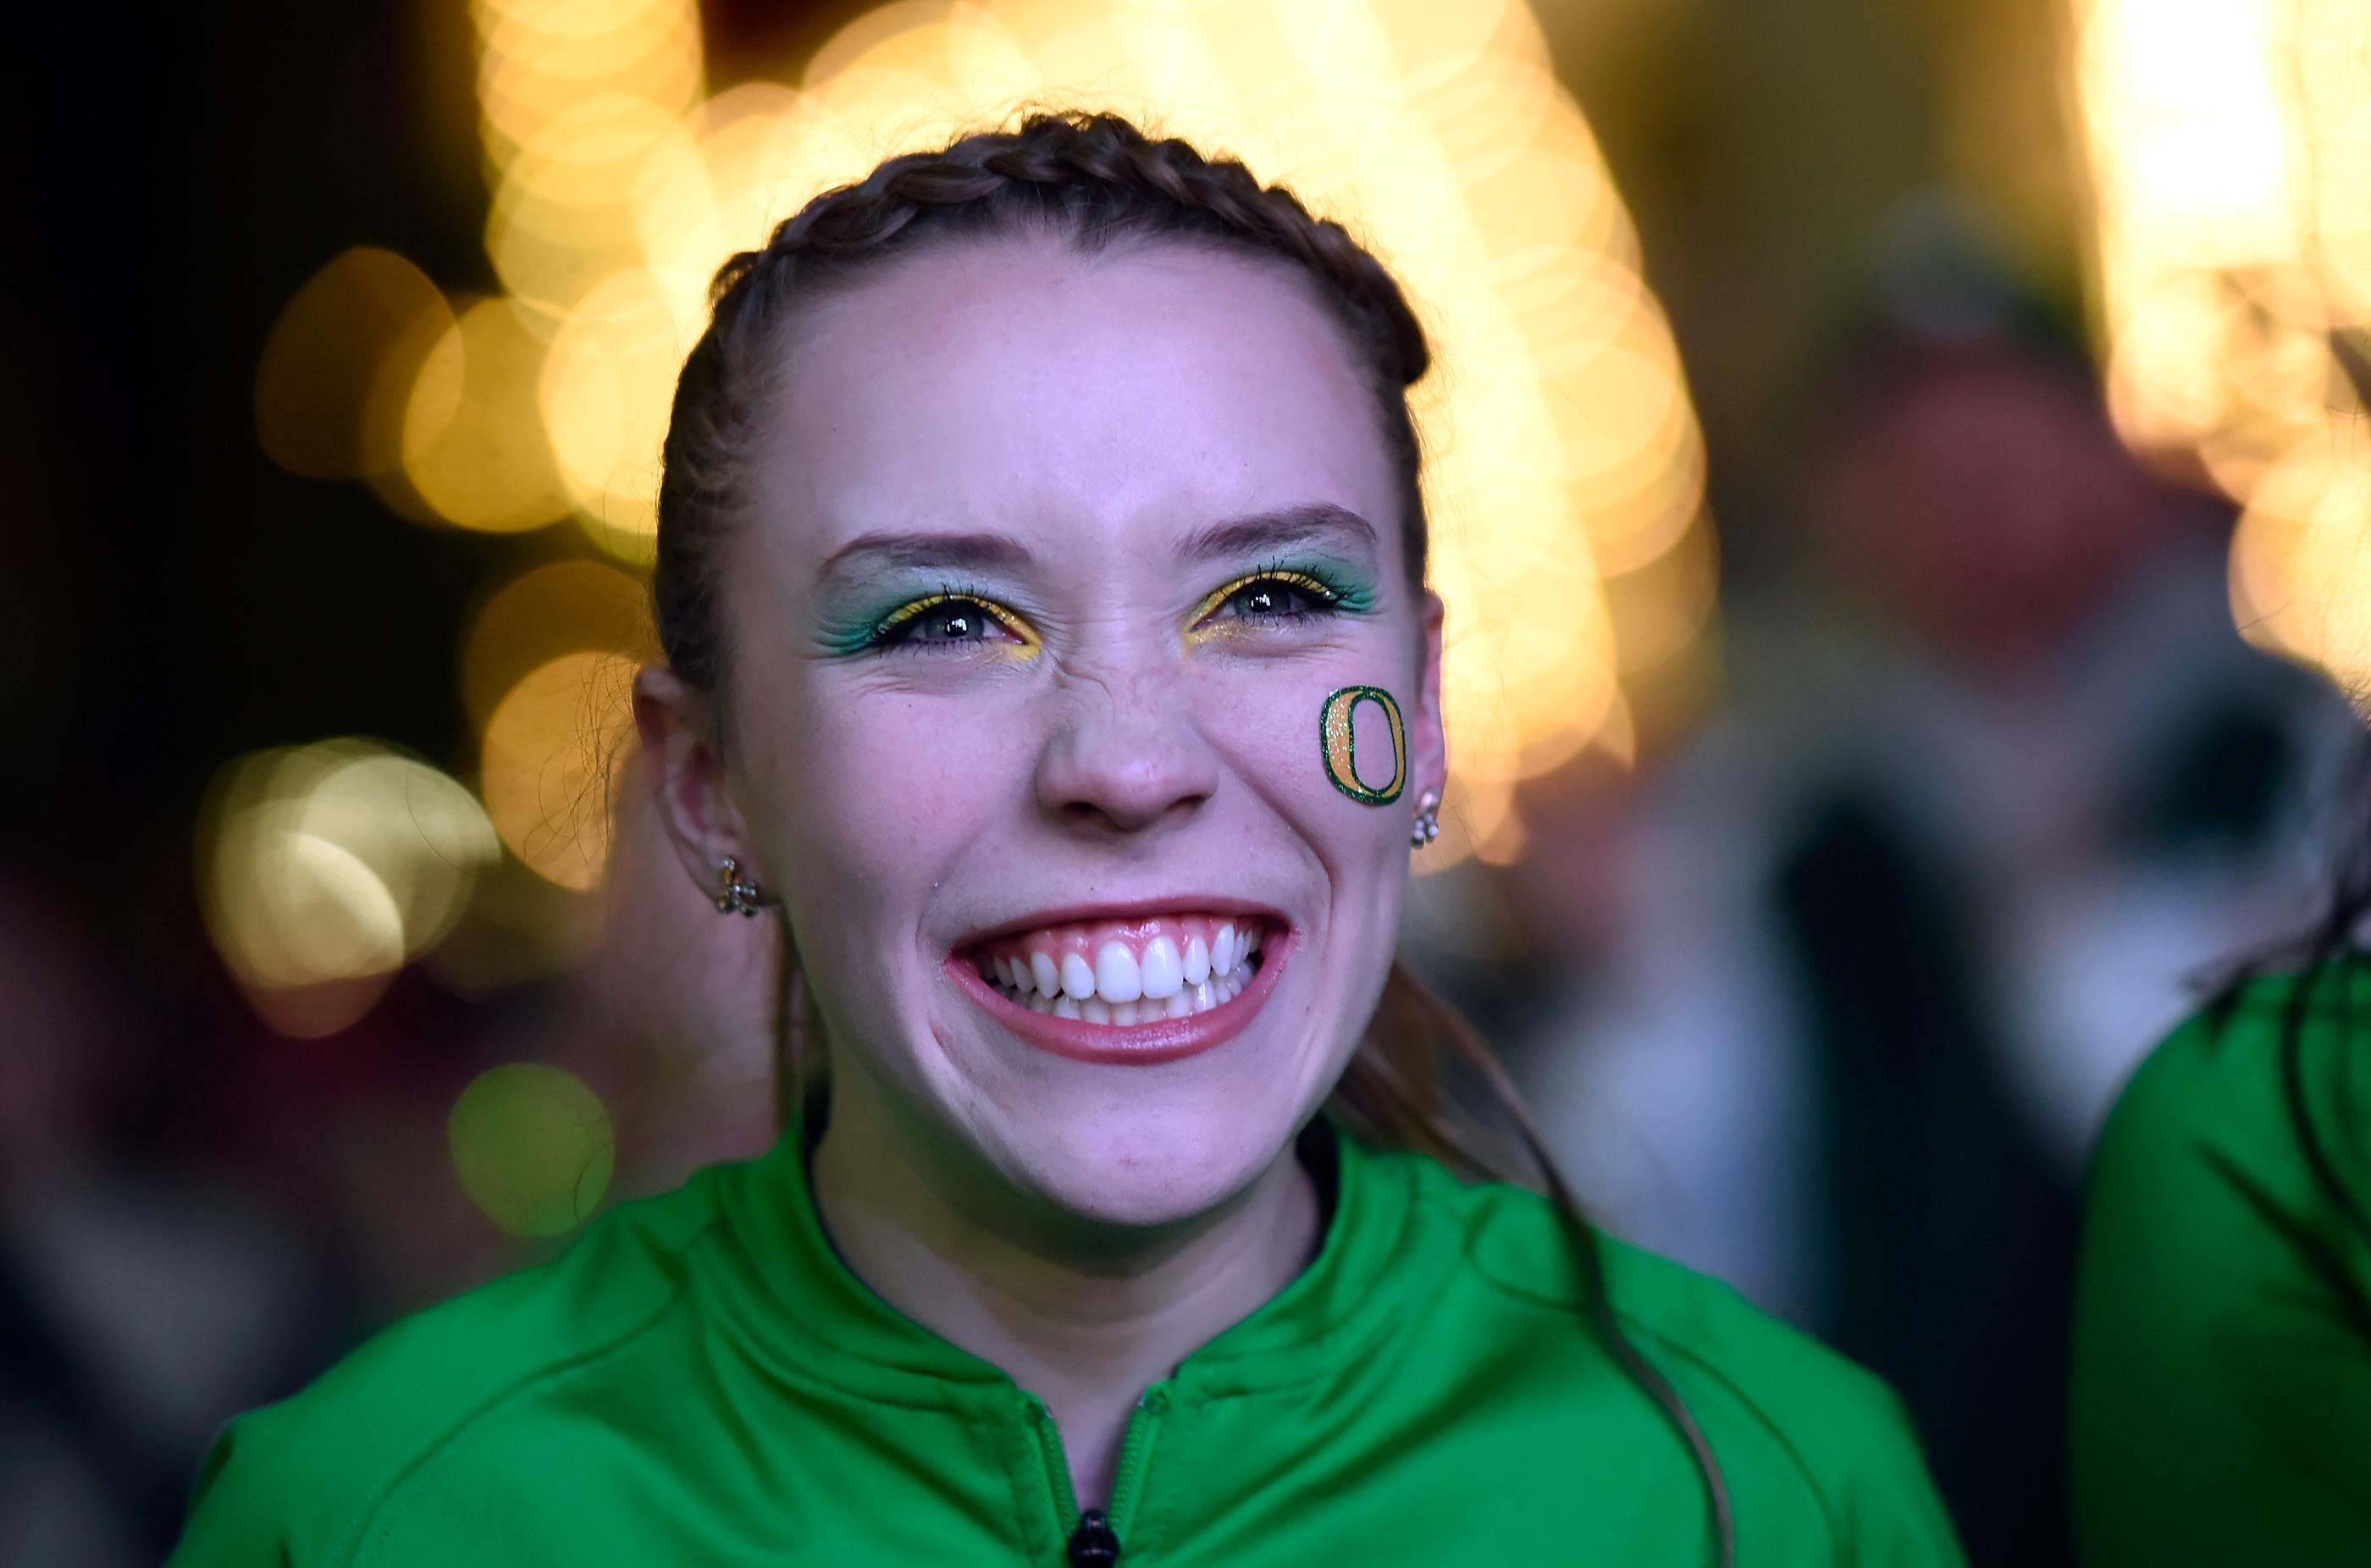 Oregon color guard member Rebecca Mayer smiles as she participates during a pep rally at the Fremont Street Experience Friday, Dec. 15, 2017, in Las Vegas. The Boise State Bronco will take on the Oregon Ducks in the 26th edition of the Las Vegas Bowl at Sam Boyd Stadium on Saturday. CREDIT: David Becker/Las Vegas News Bureau